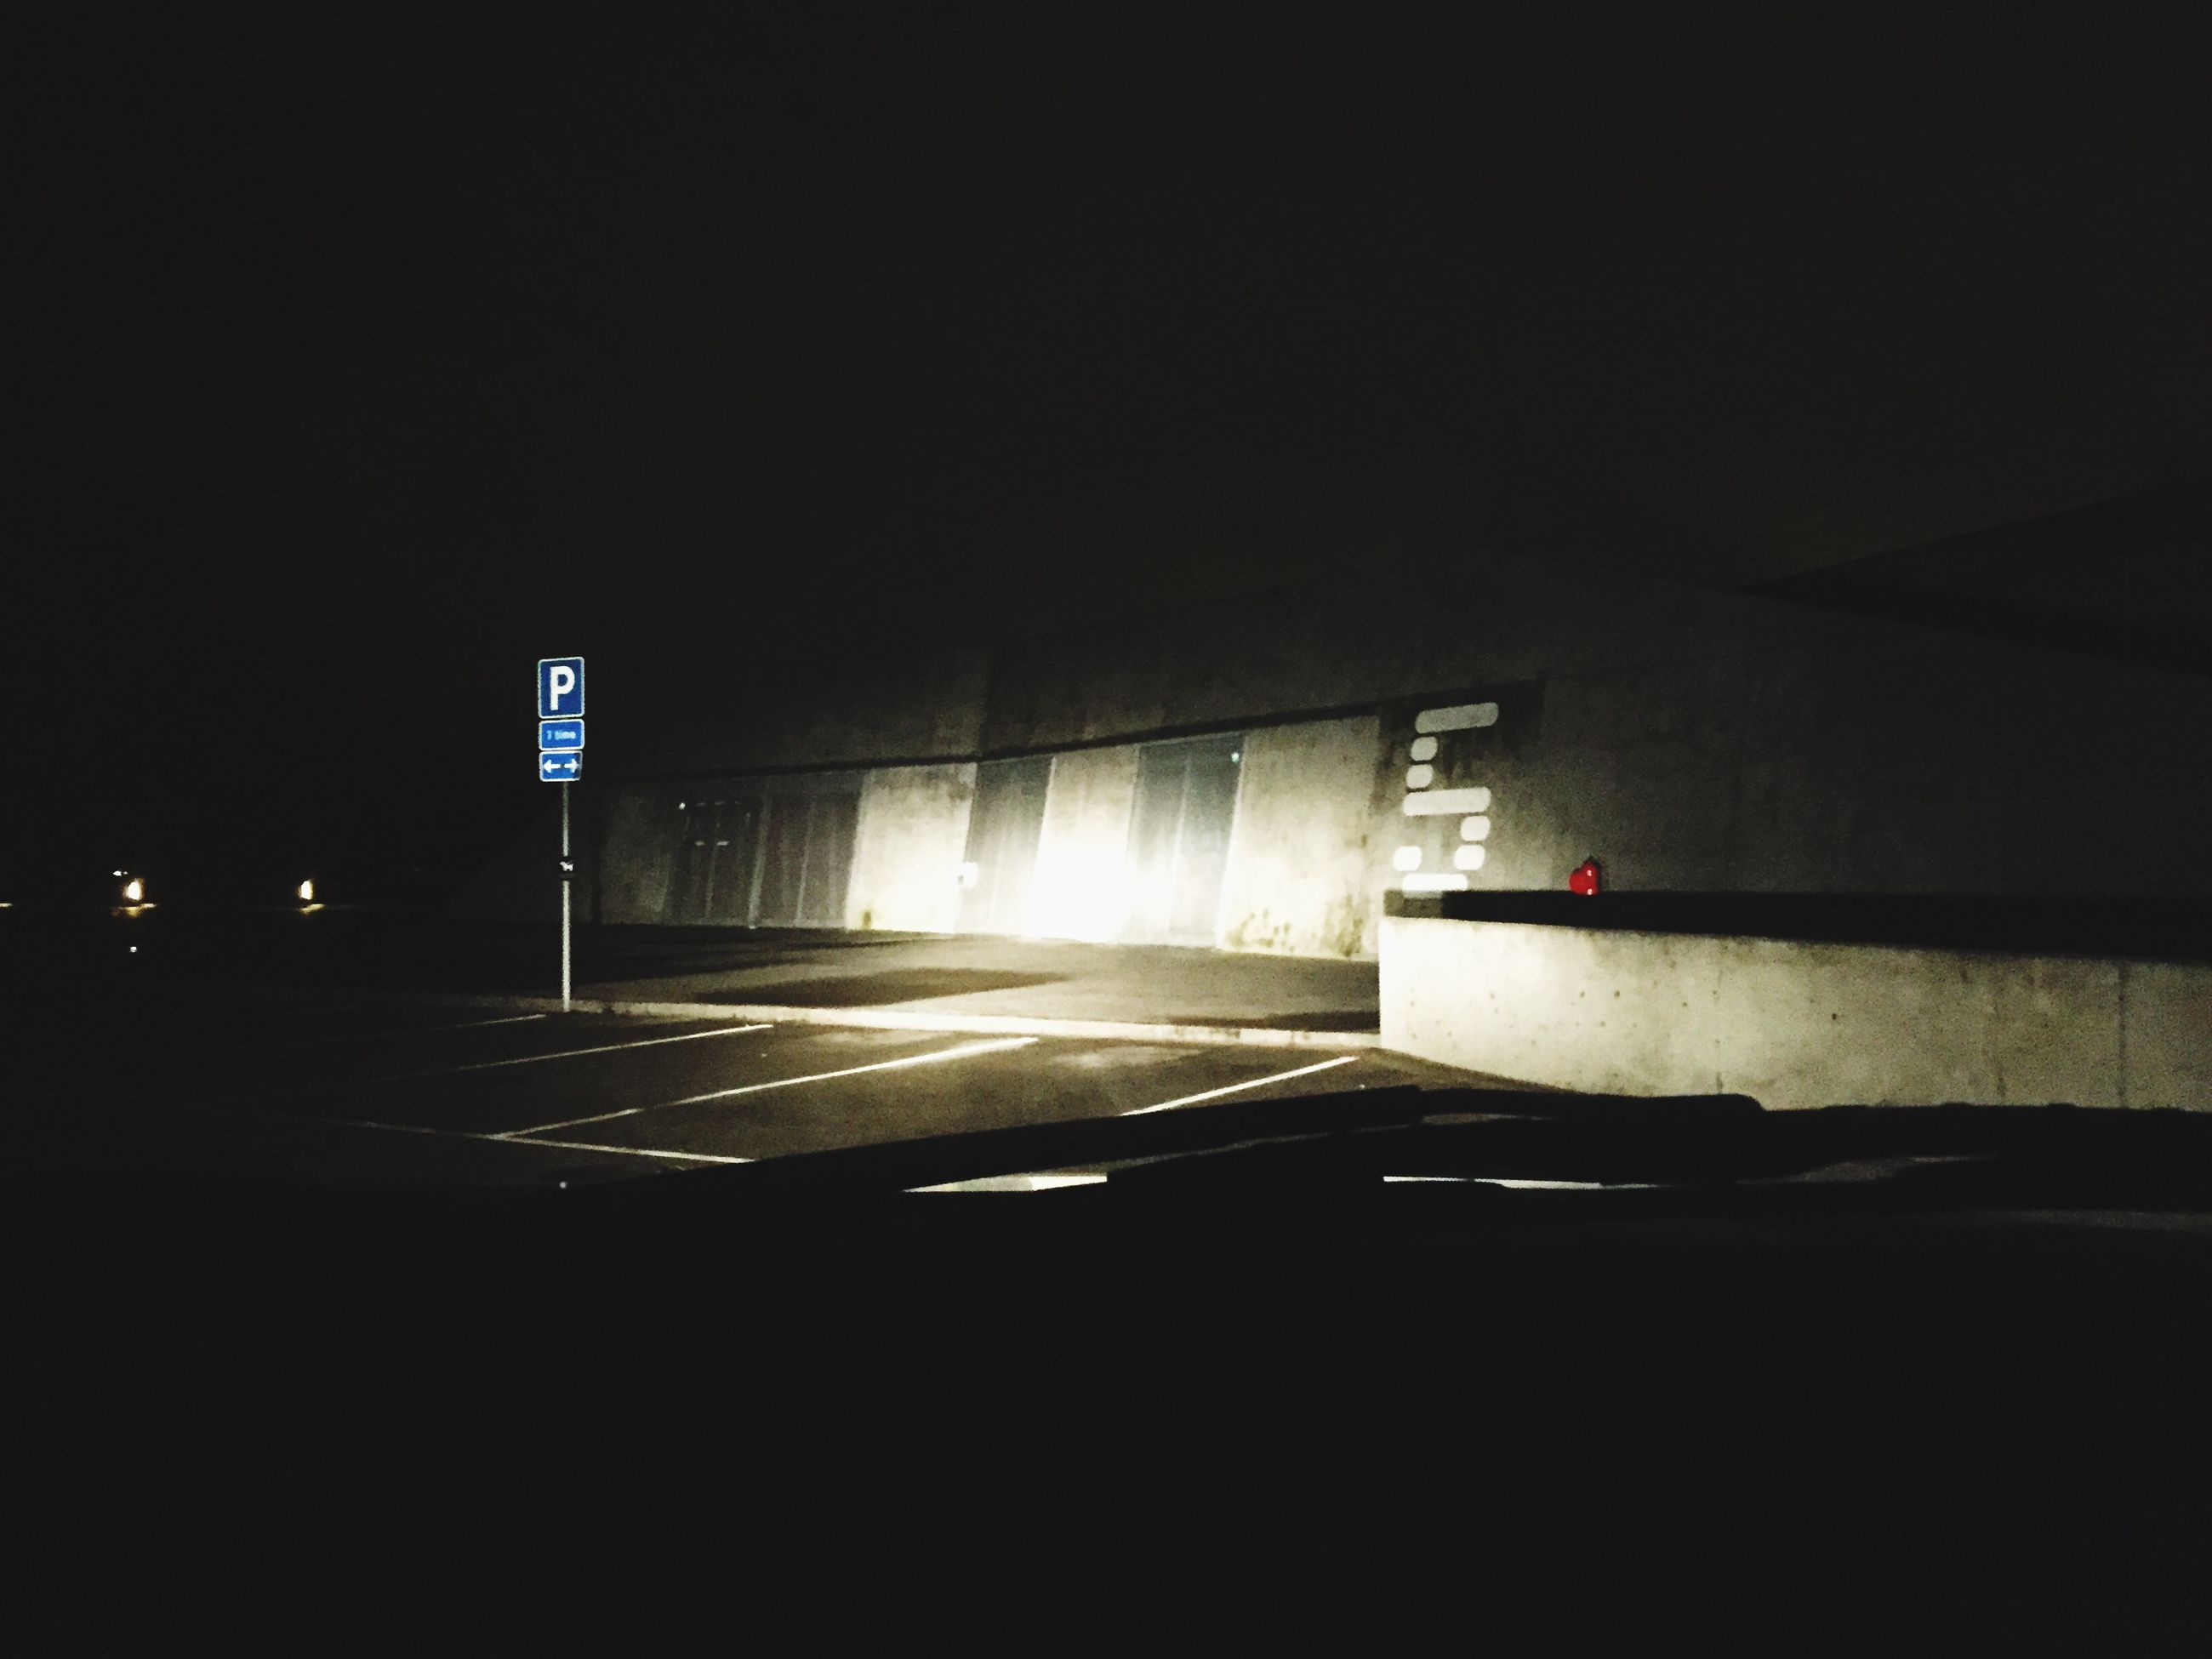 transportation, illuminated, copy space, road, red, night, guidance, street, clear sky, empty, no people, road marking, mode of transport, lighting equipment, absence, car, land vehicle, outdoors, dark, built structure